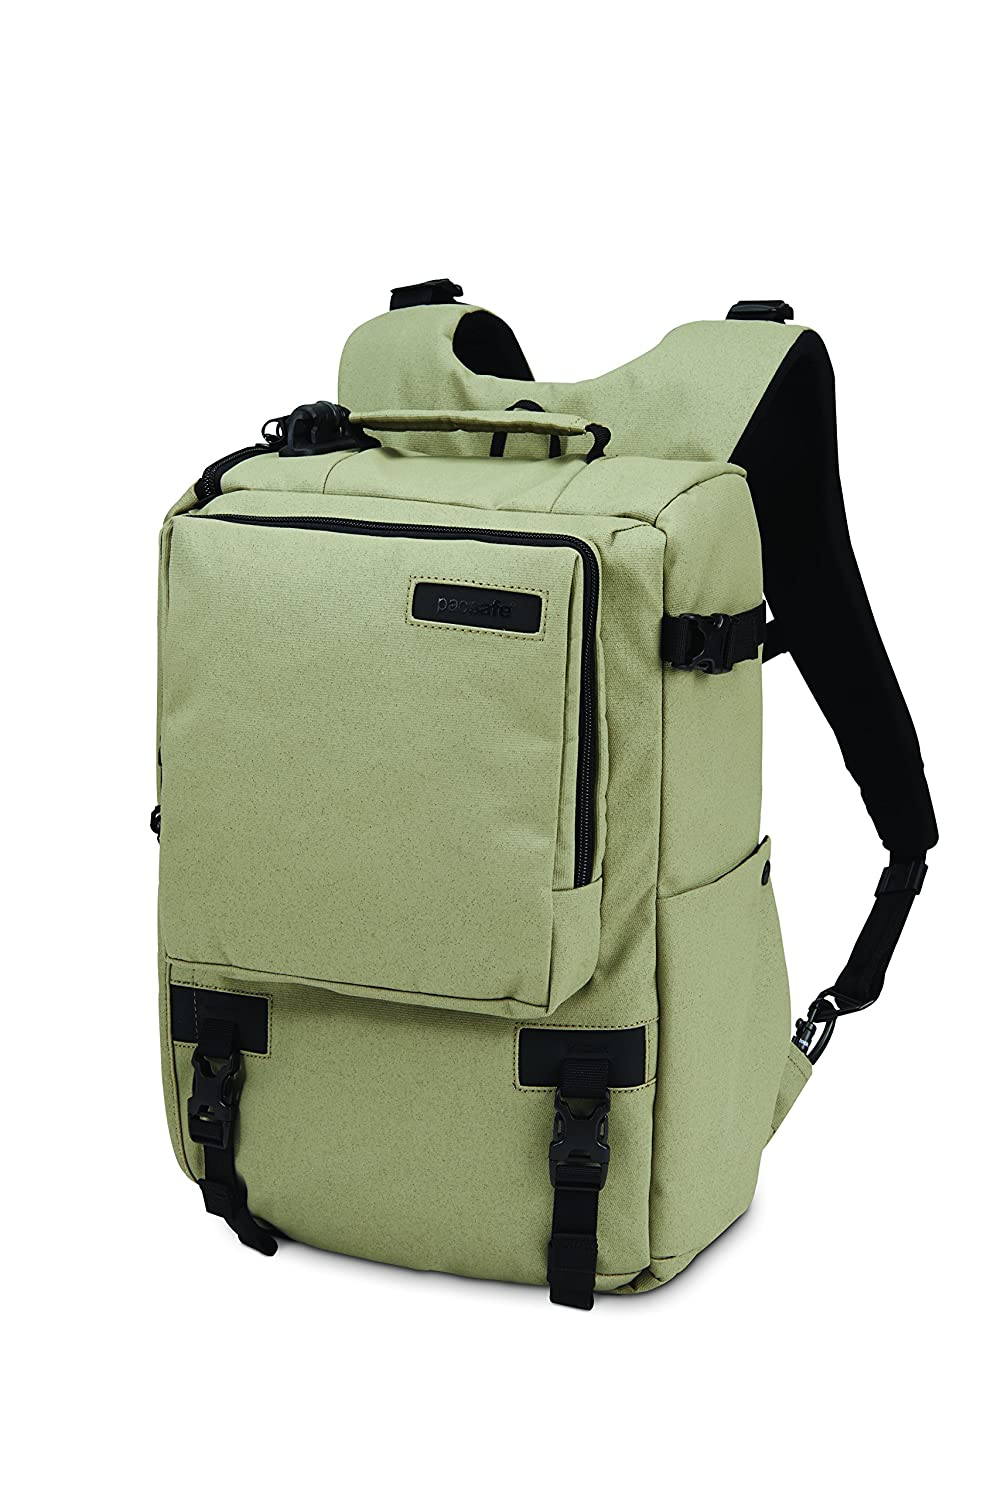 Pacsafe Camsafe Z16 Anti-Theft Camera and 13-Inch Laptop Backpack, Slate Green Outpac Designs Inc - PACSAFE - CA Z16-Slate Green